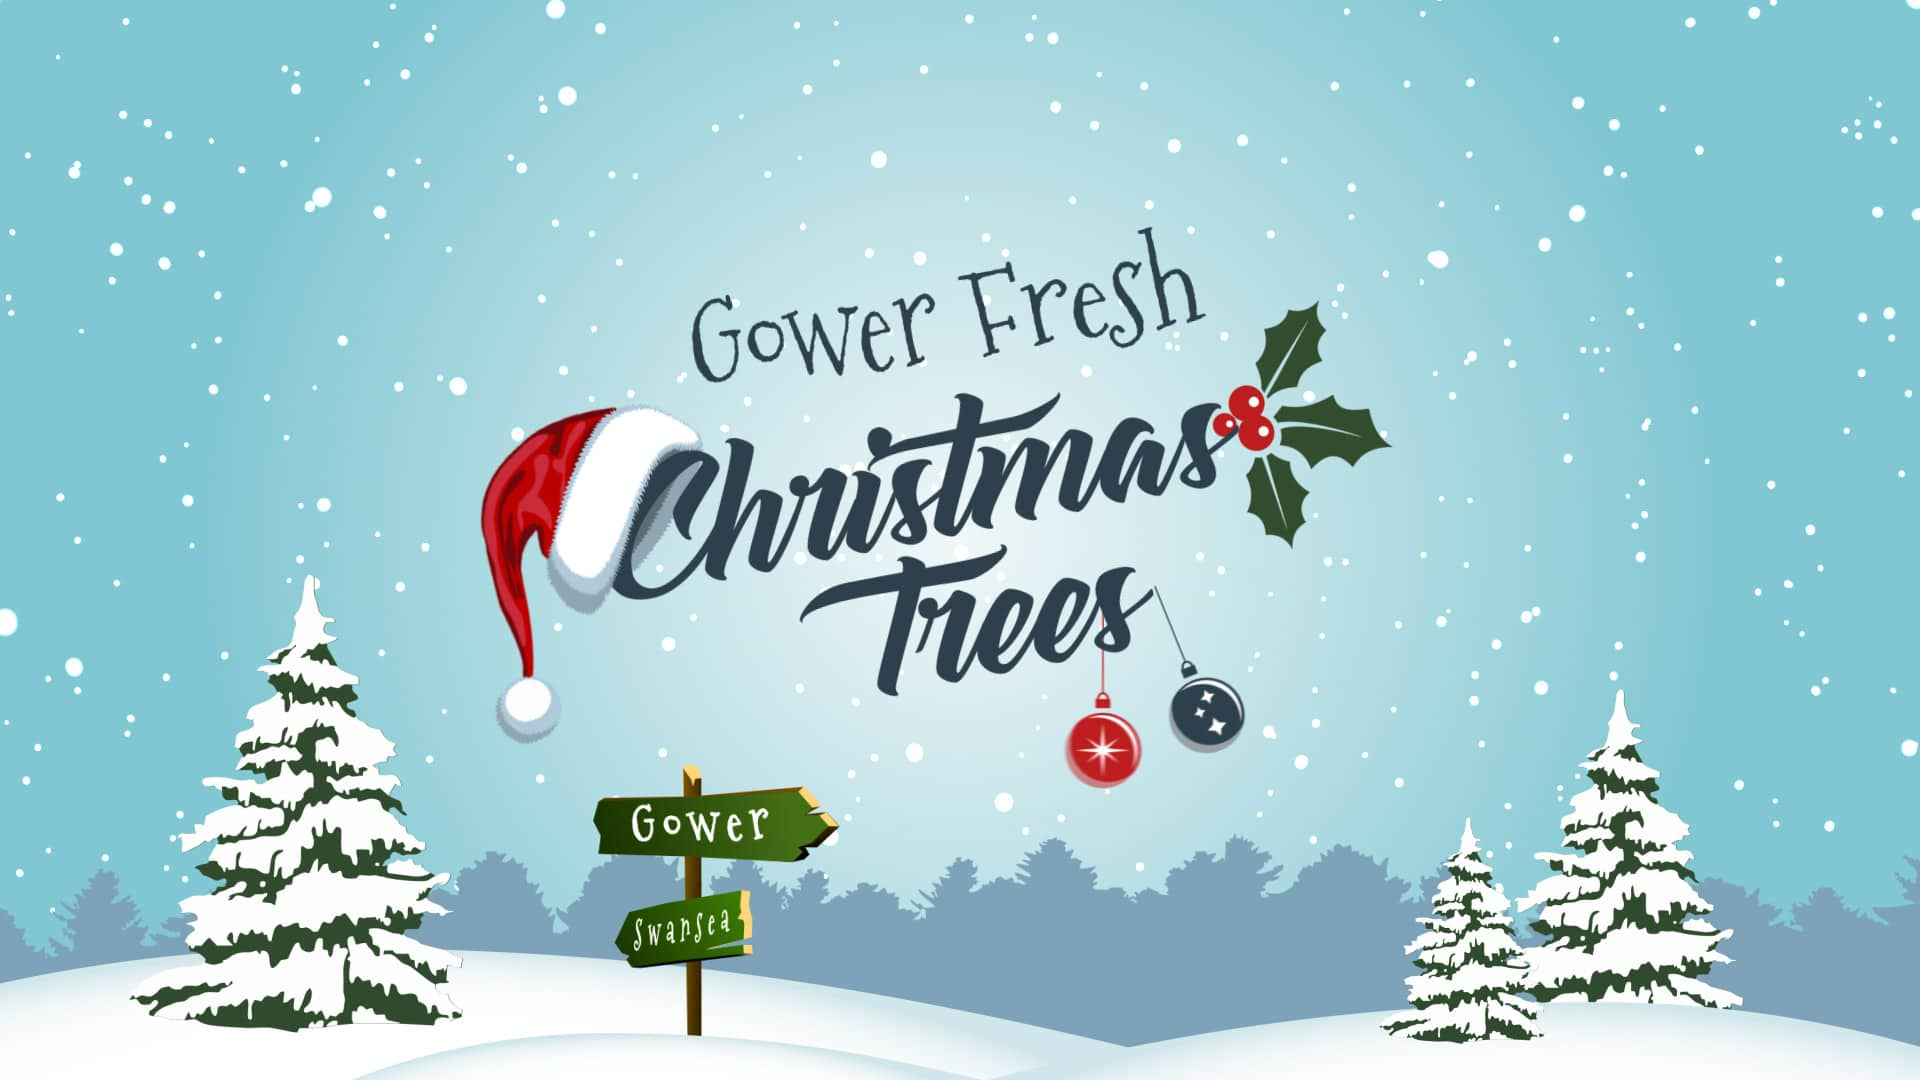 gower fresh christmas trees swansea winter wonderland banner